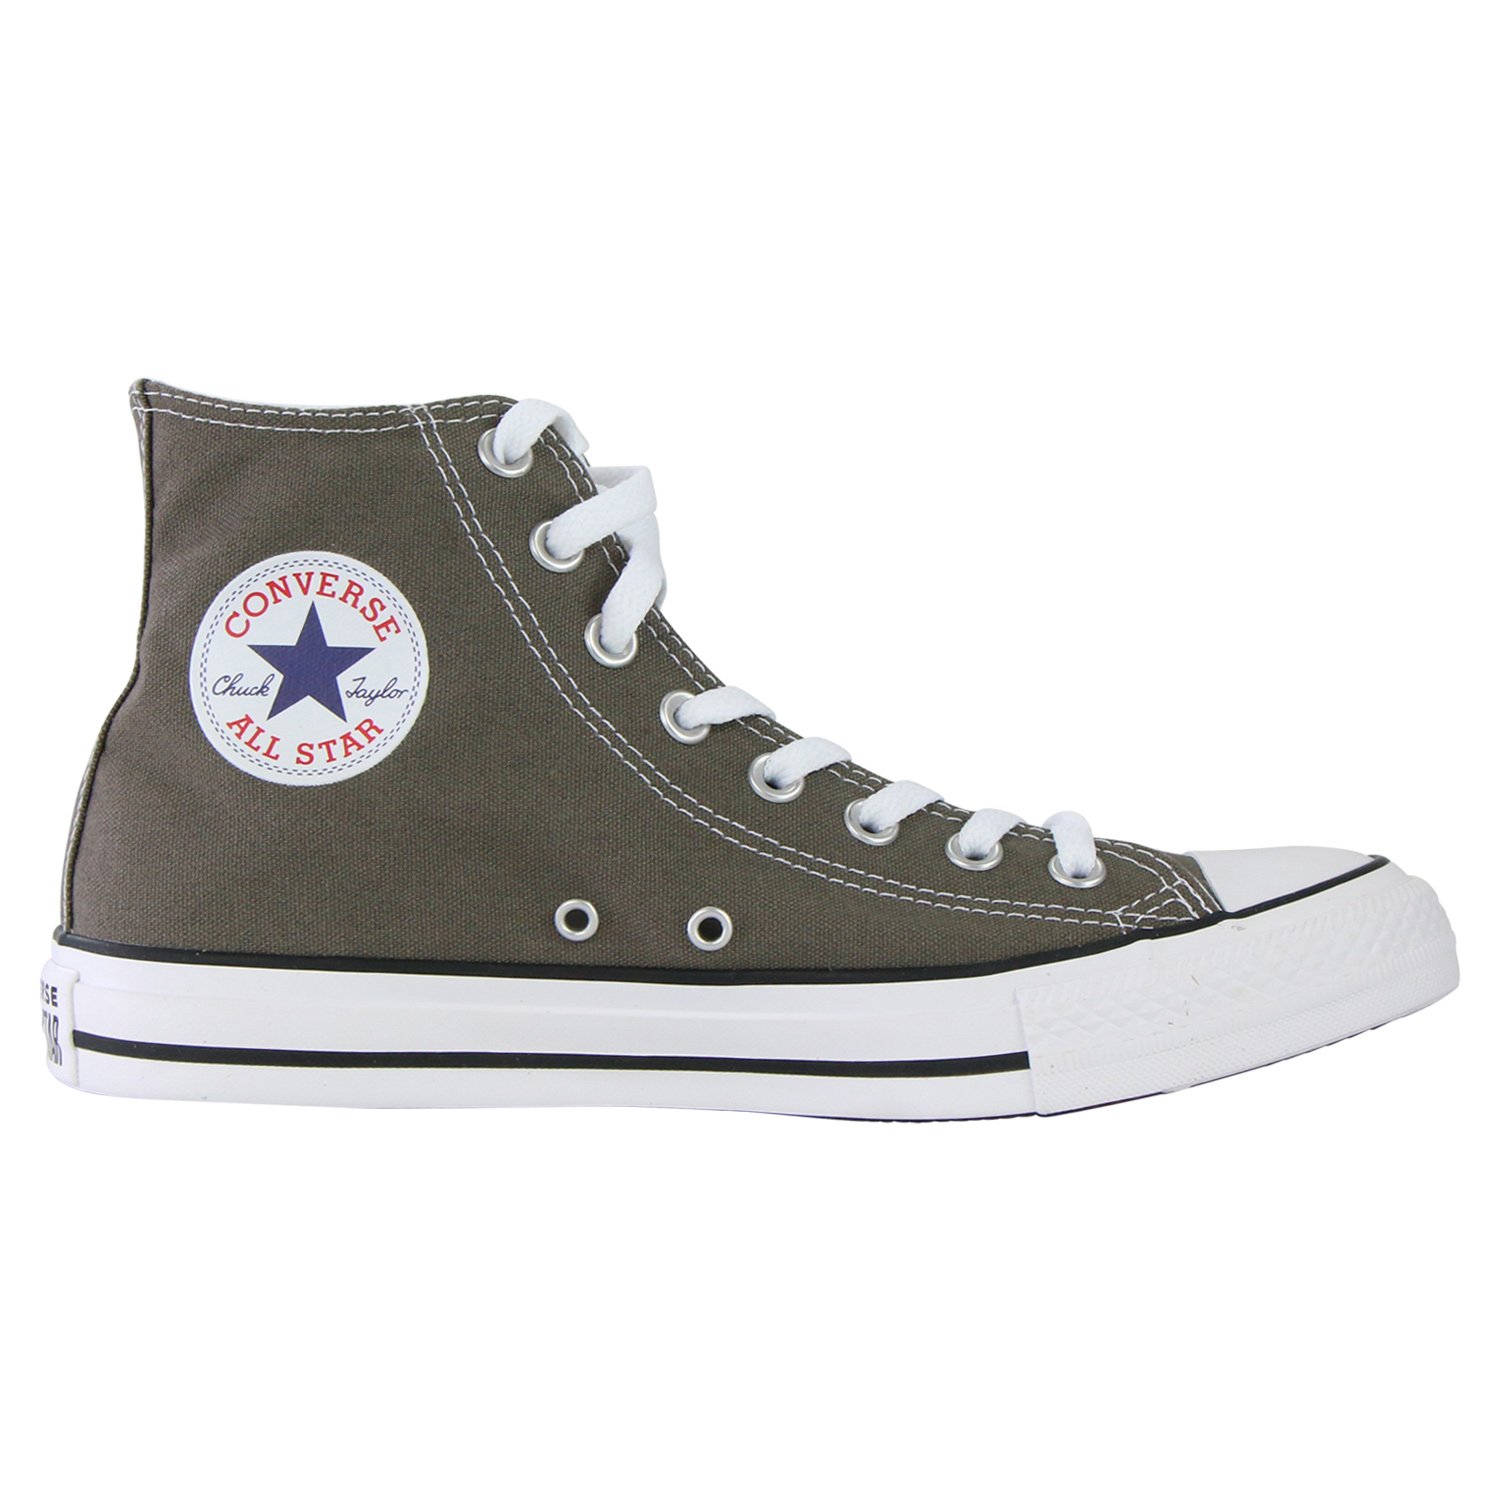 converse all star chucks hi hip top sneaker grau braun. Black Bedroom Furniture Sets. Home Design Ideas